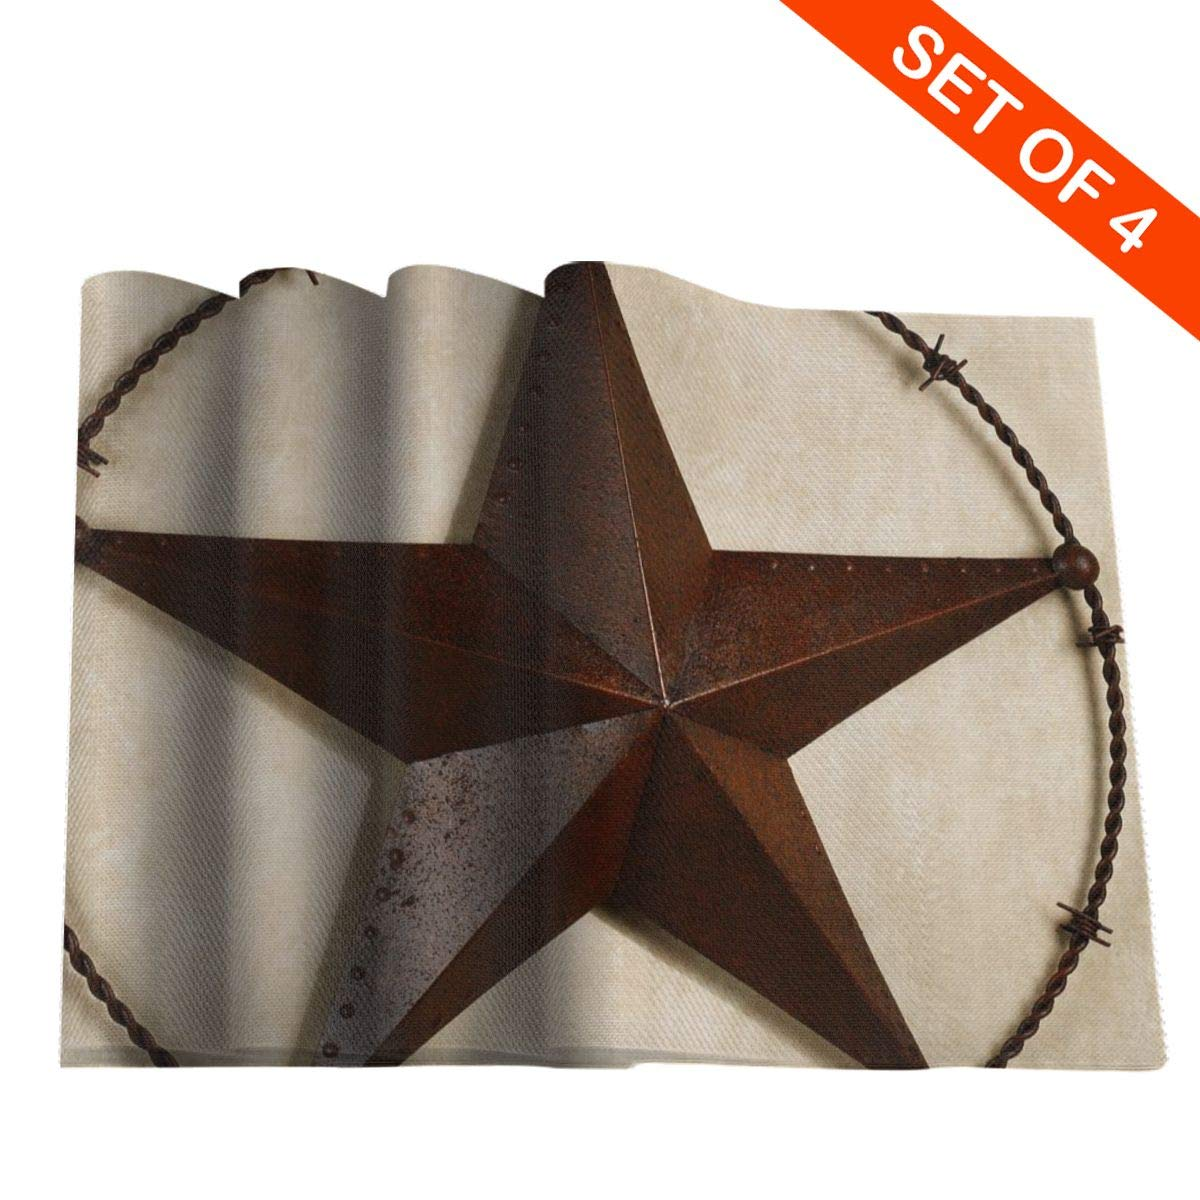 12X18 Inches GSRONY Rectangular Table Placemats Seashell Starfish Drift Bottle Grid Heat-Resistant Place Mats for Dining Table Set of 4